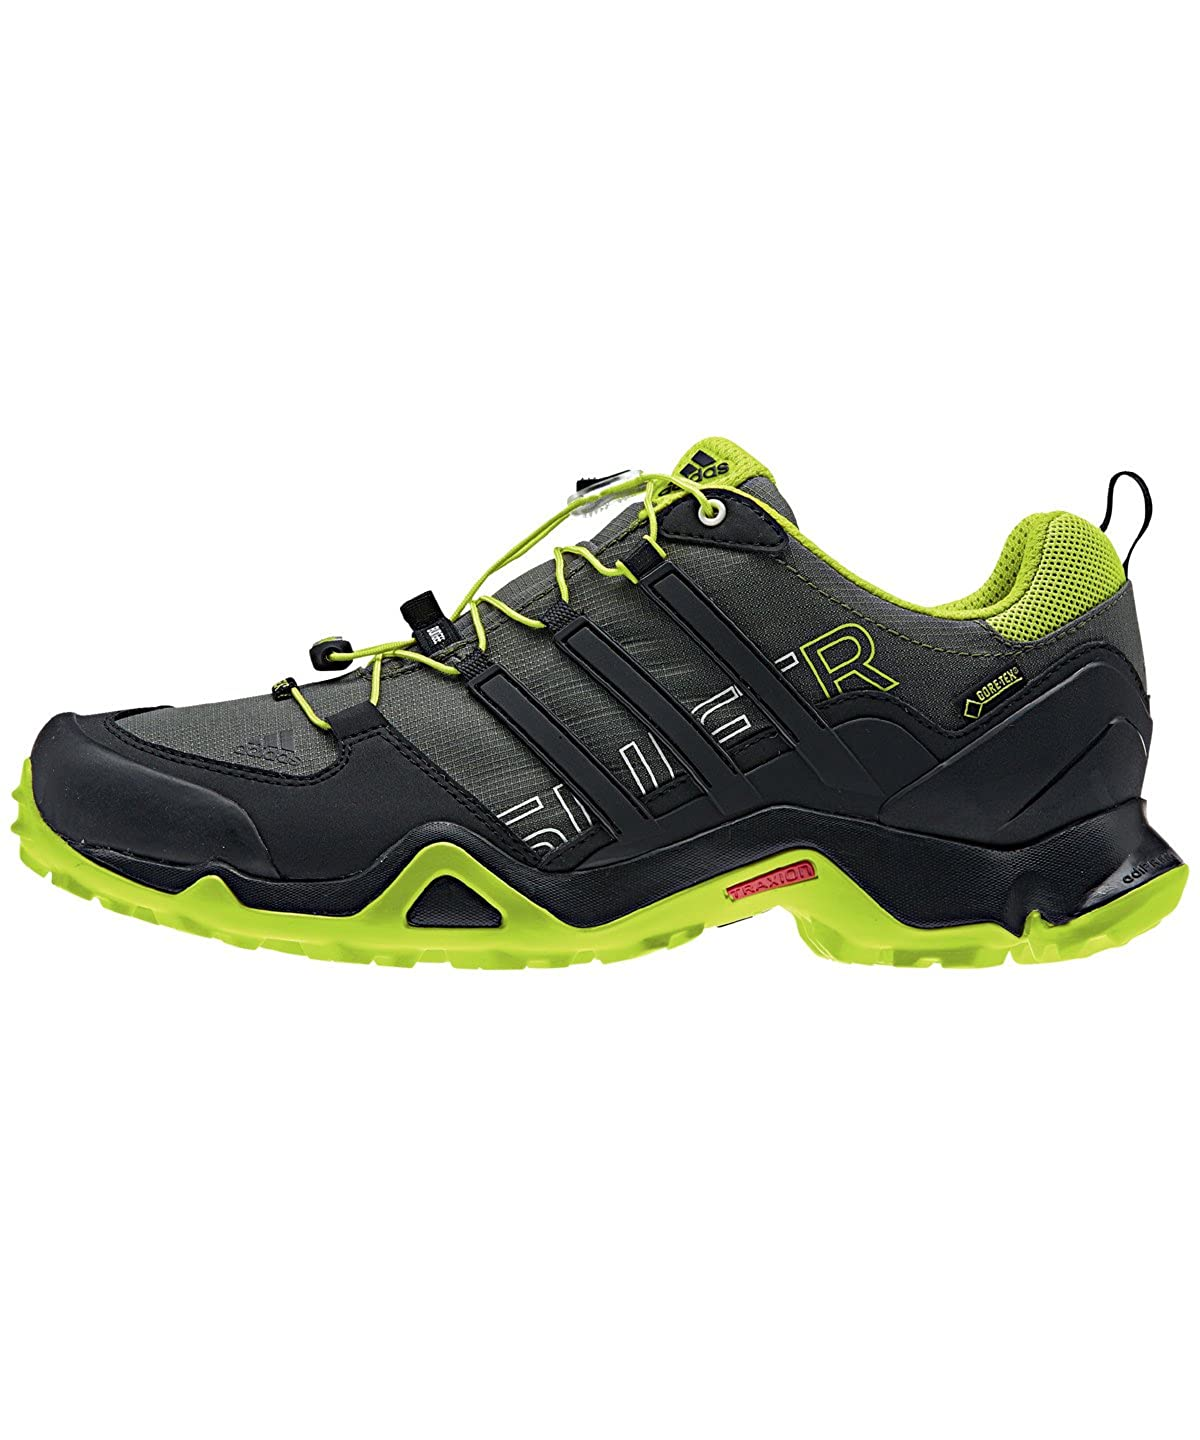 adidas Outdoor Schuhe Terrex Swift R GTX Goretex. Herren